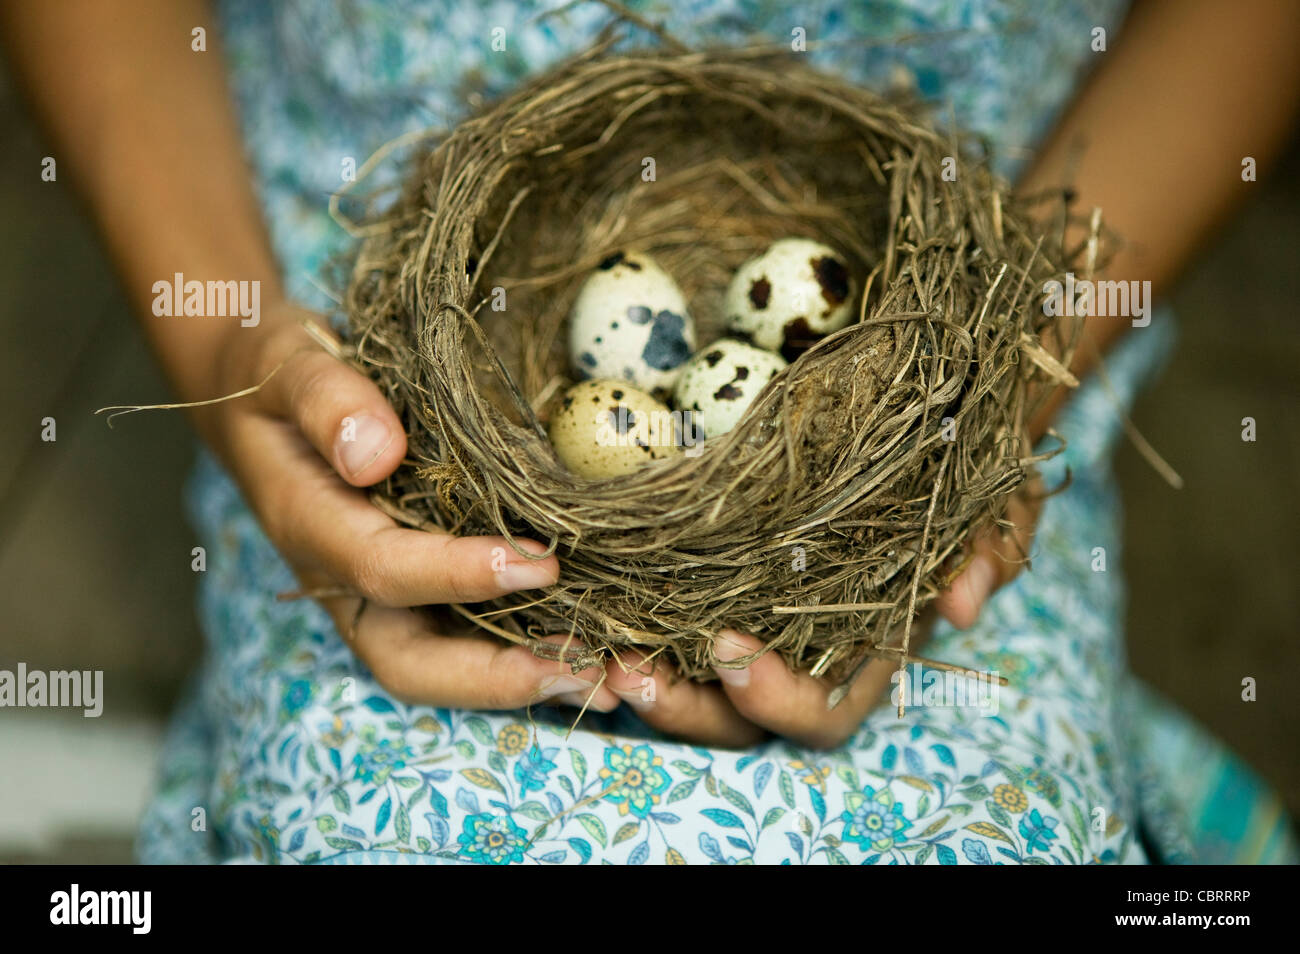 Girl holding bird's nest with speckled eggs. - Stock Image